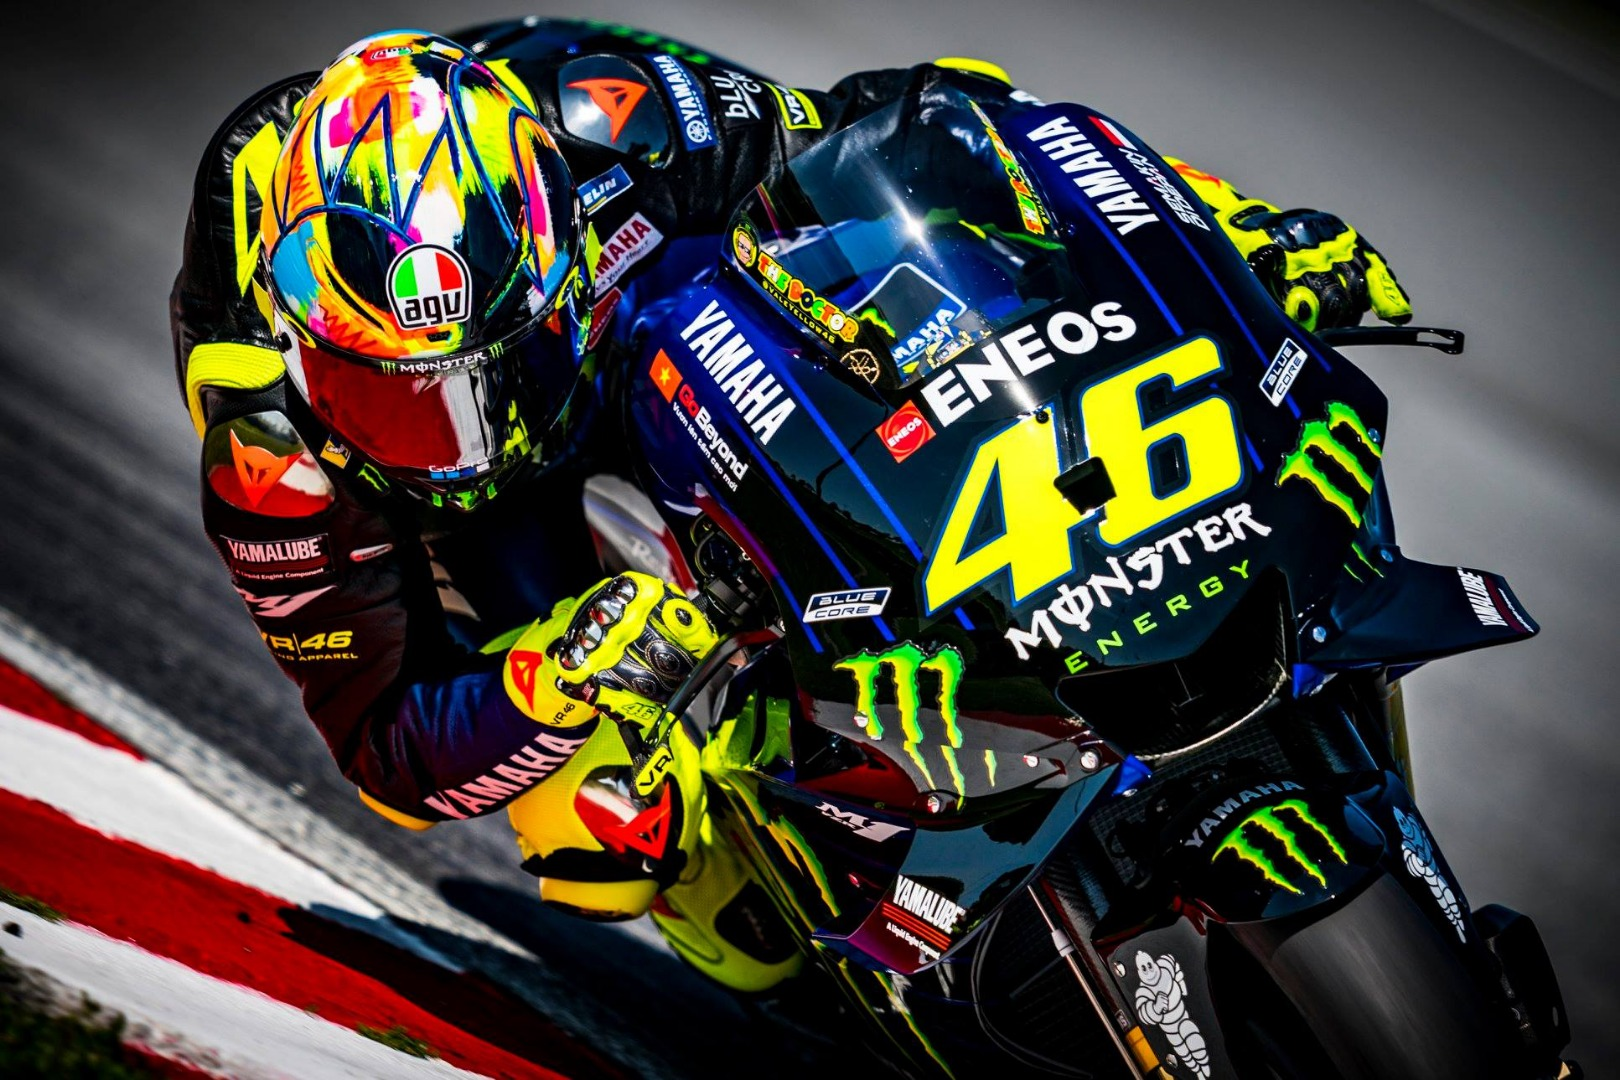 valentino rossi agv pista gp r winter test 2019. Black Bedroom Furniture Sets. Home Design Ideas